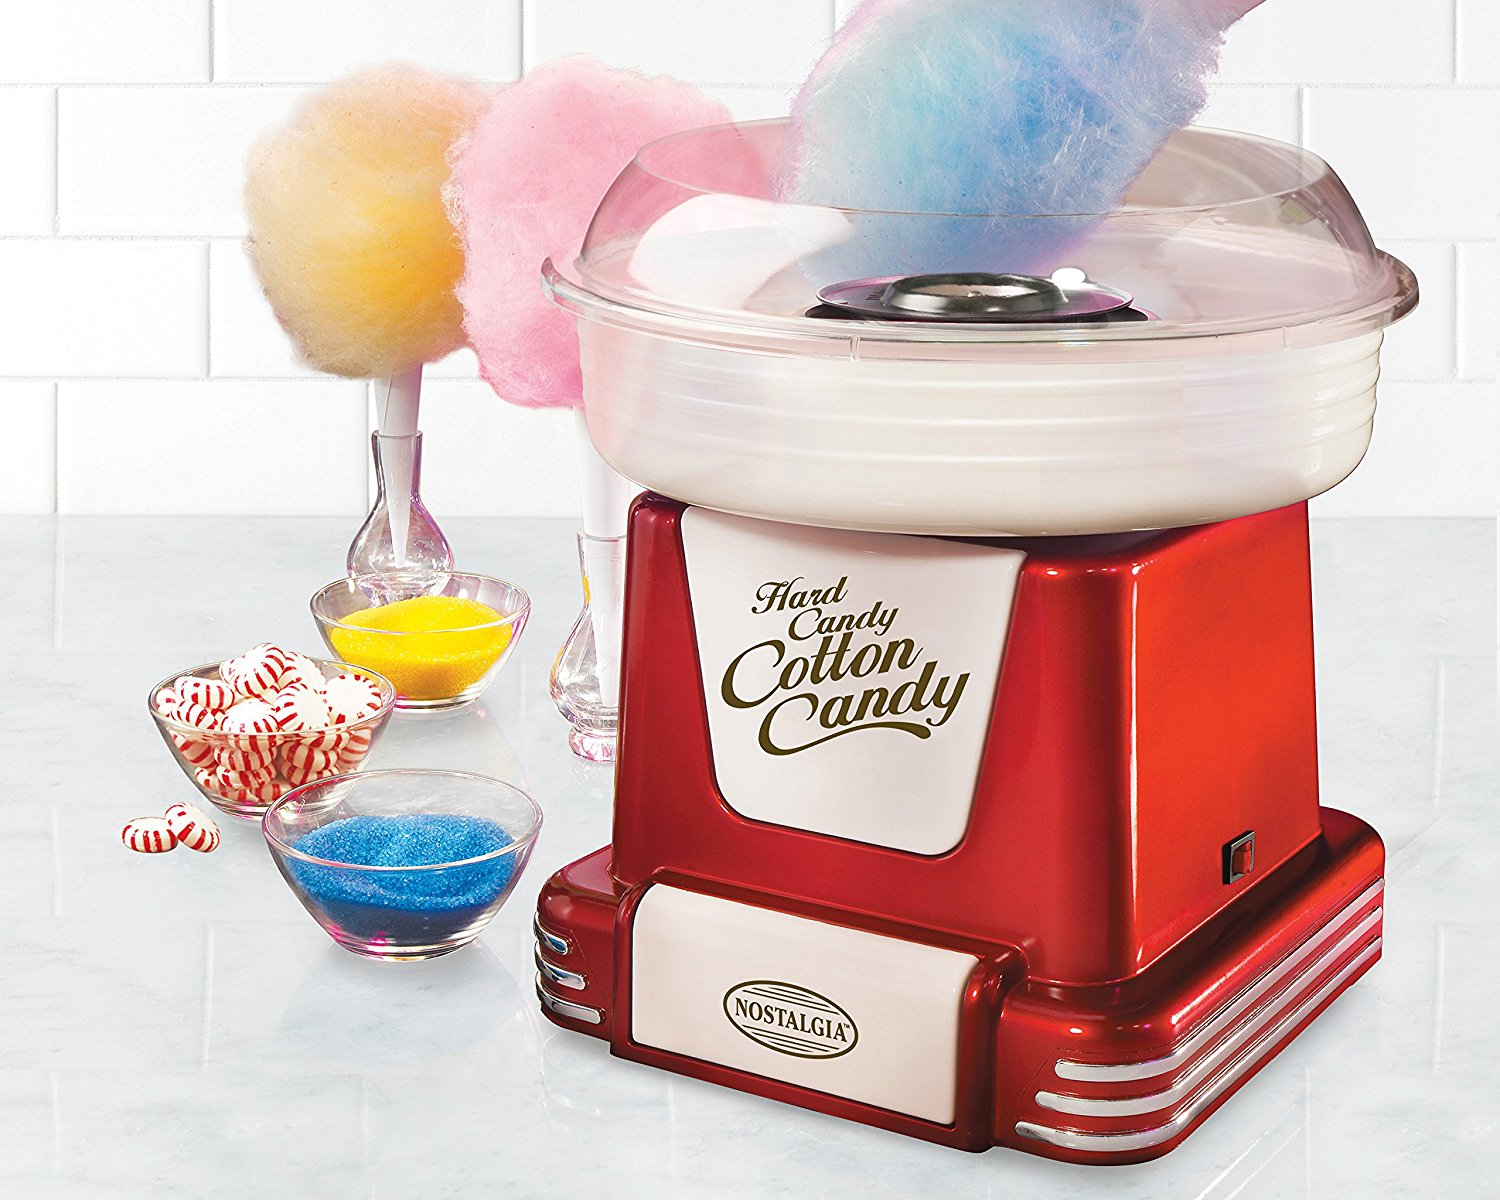 Candy Cotton Candy Maker